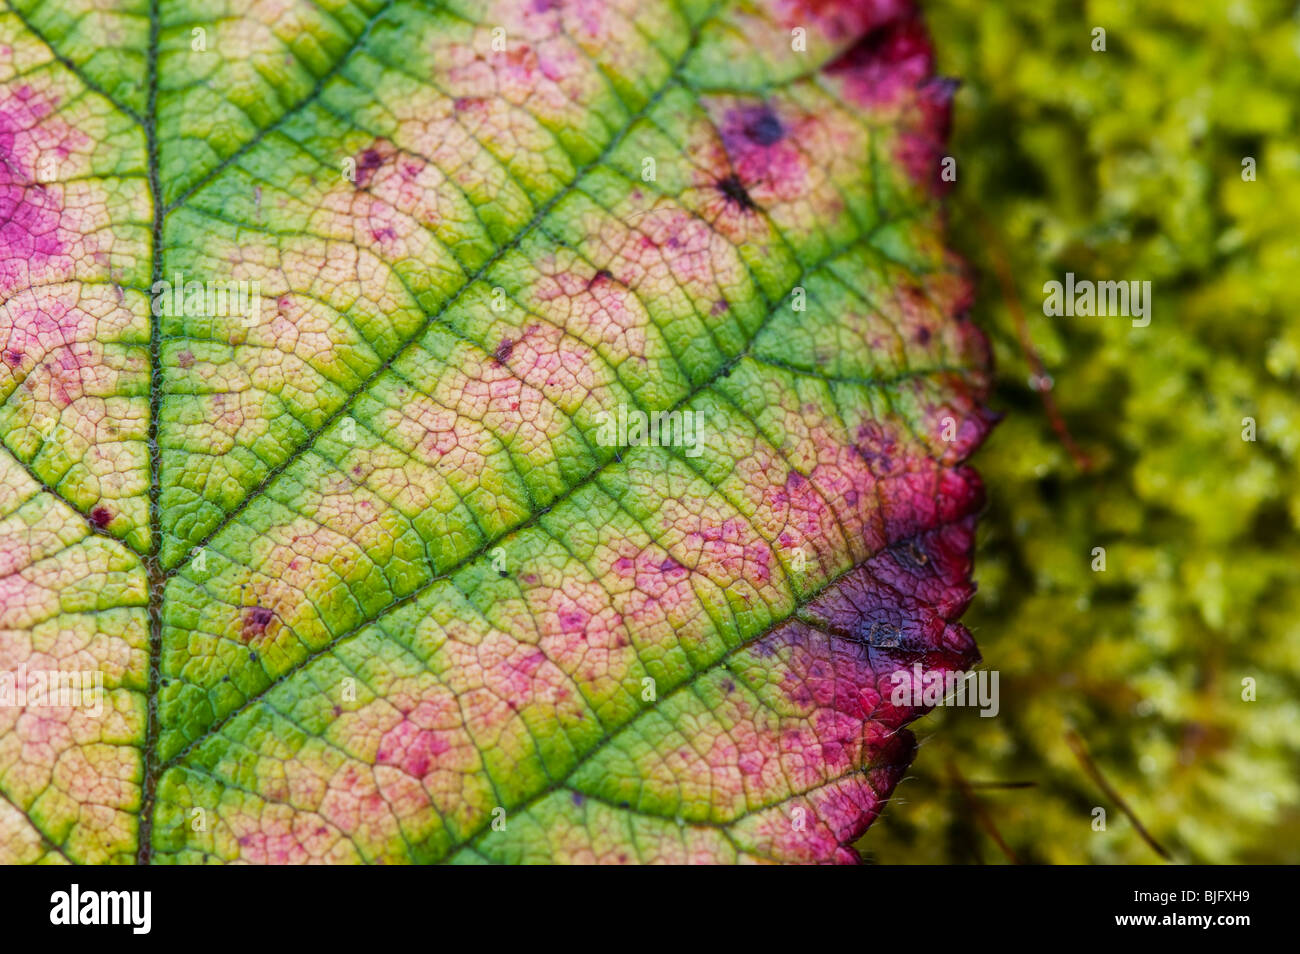 Bramble leaf loosing it Chlorophyll and discolouring in winter. UK - Stock Image